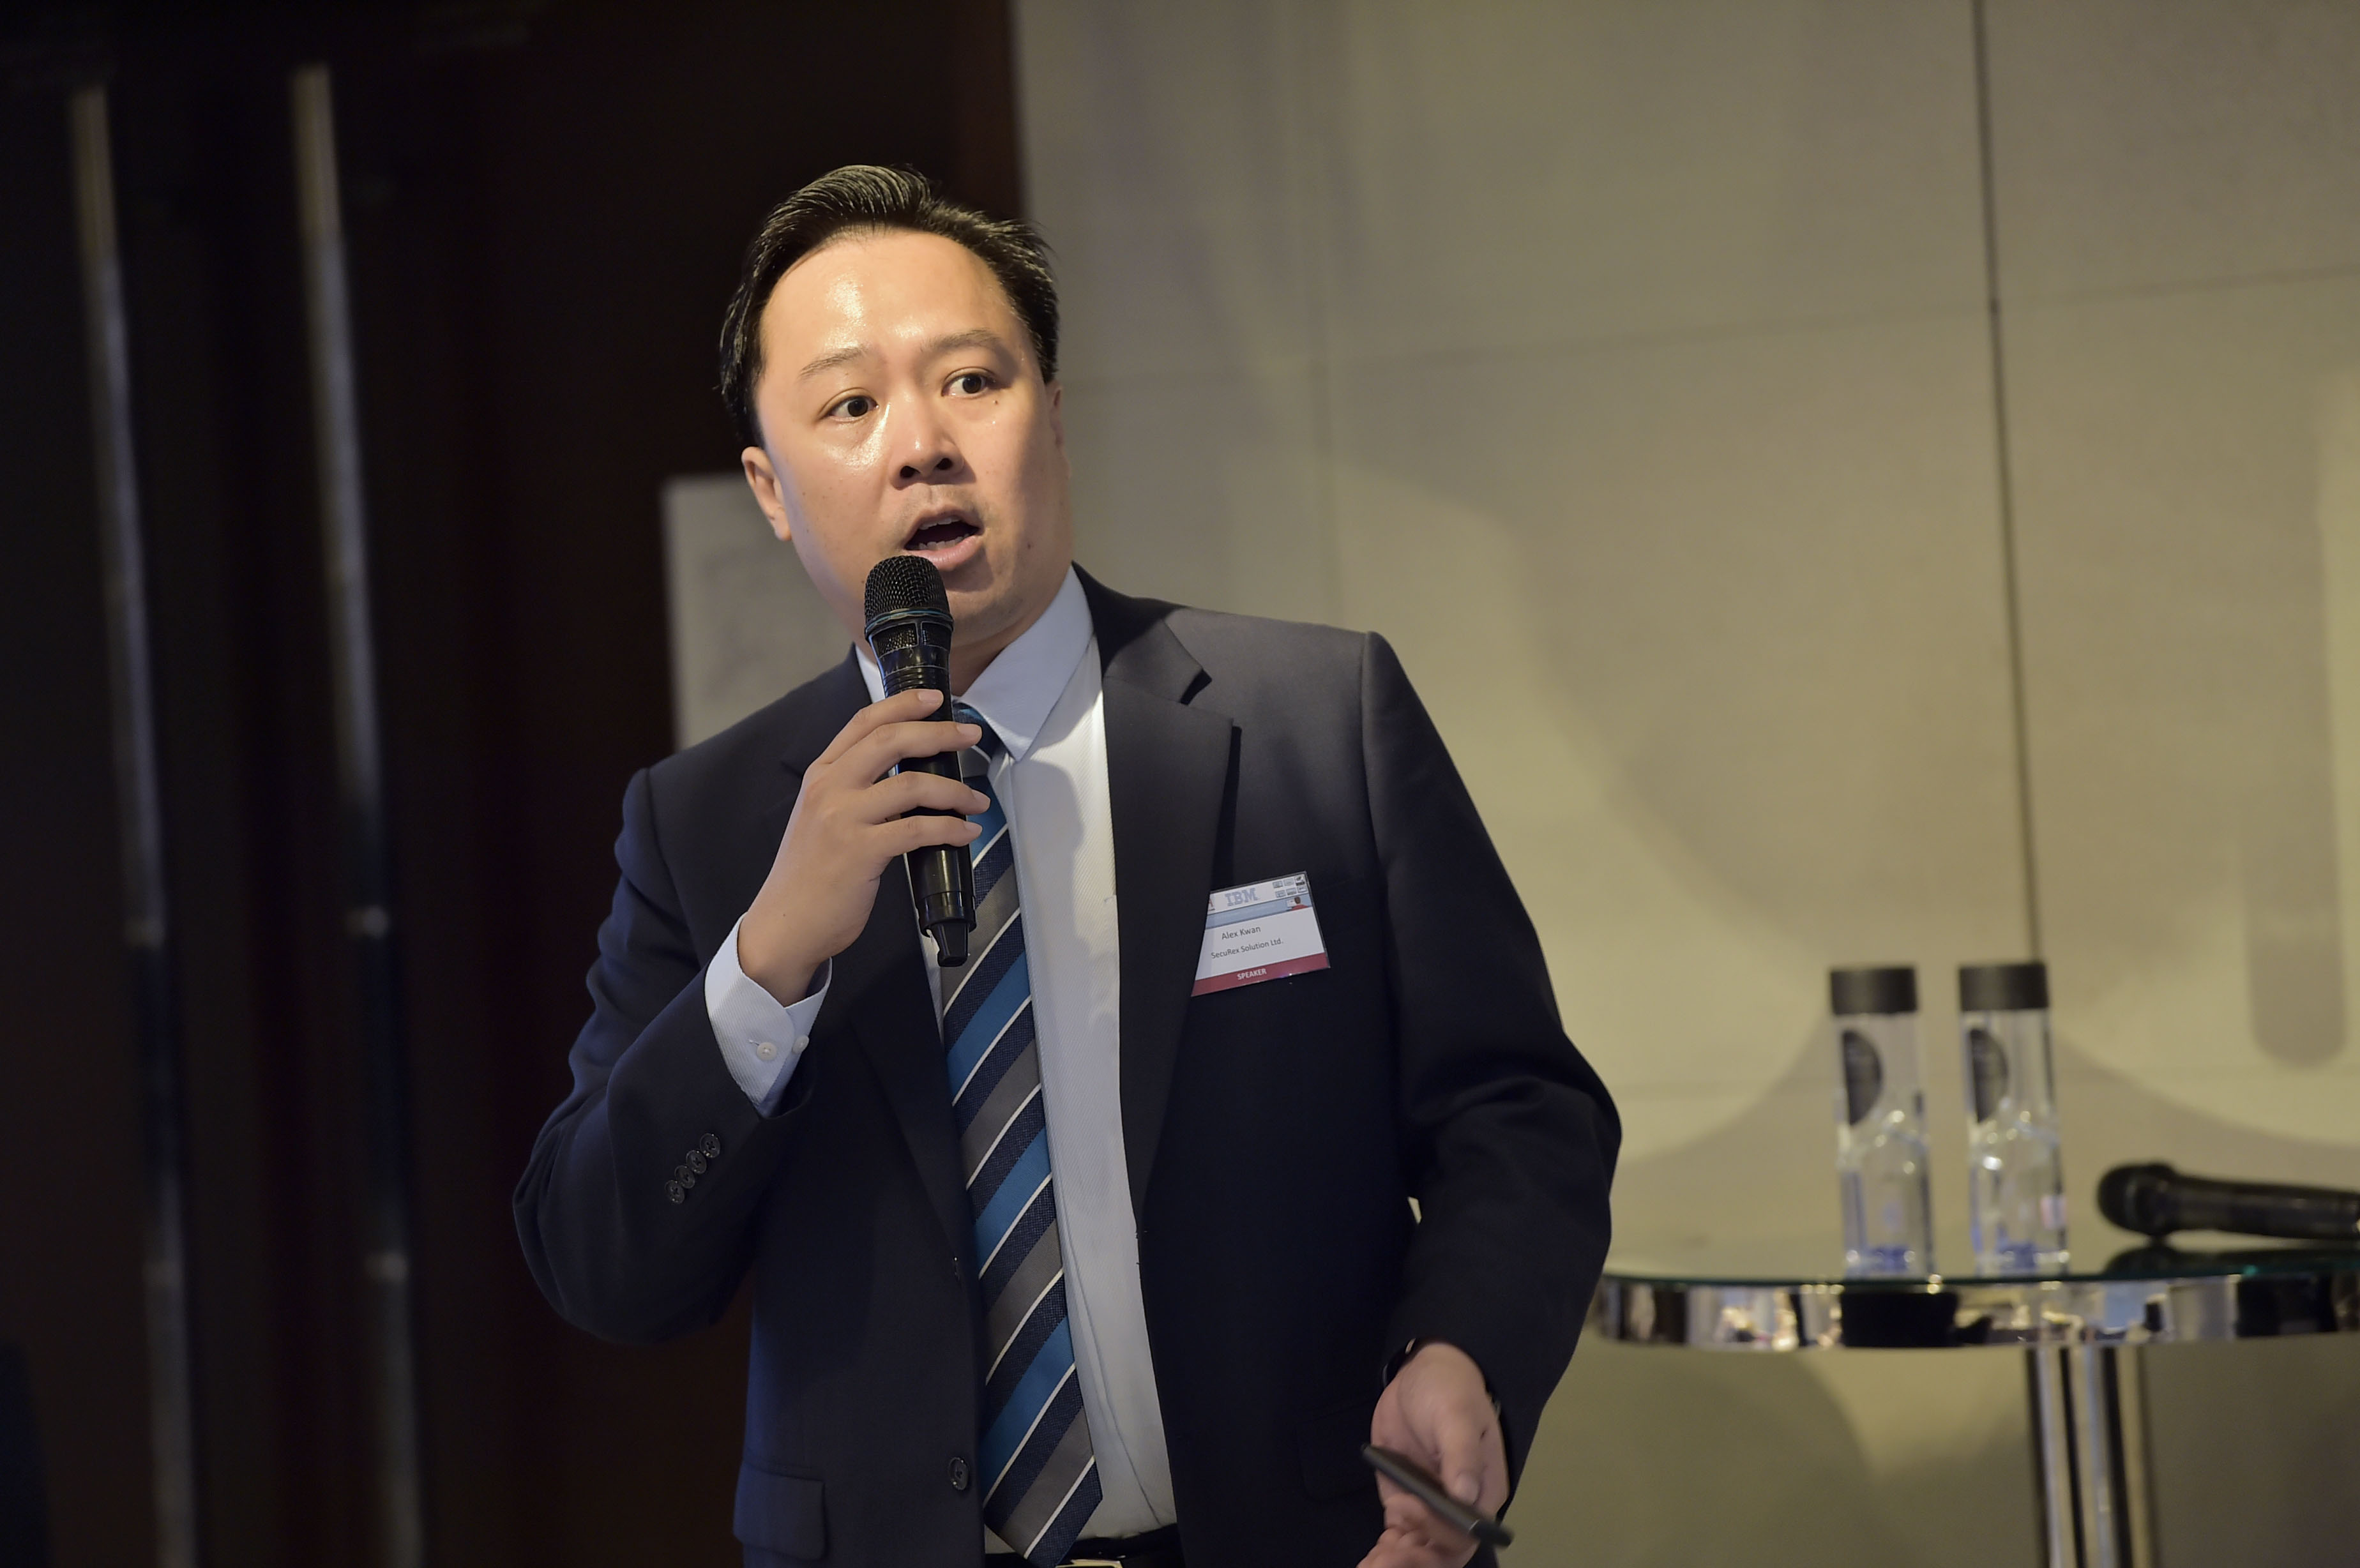 Alex Kwan, general manager and founder of SecuRex Solution